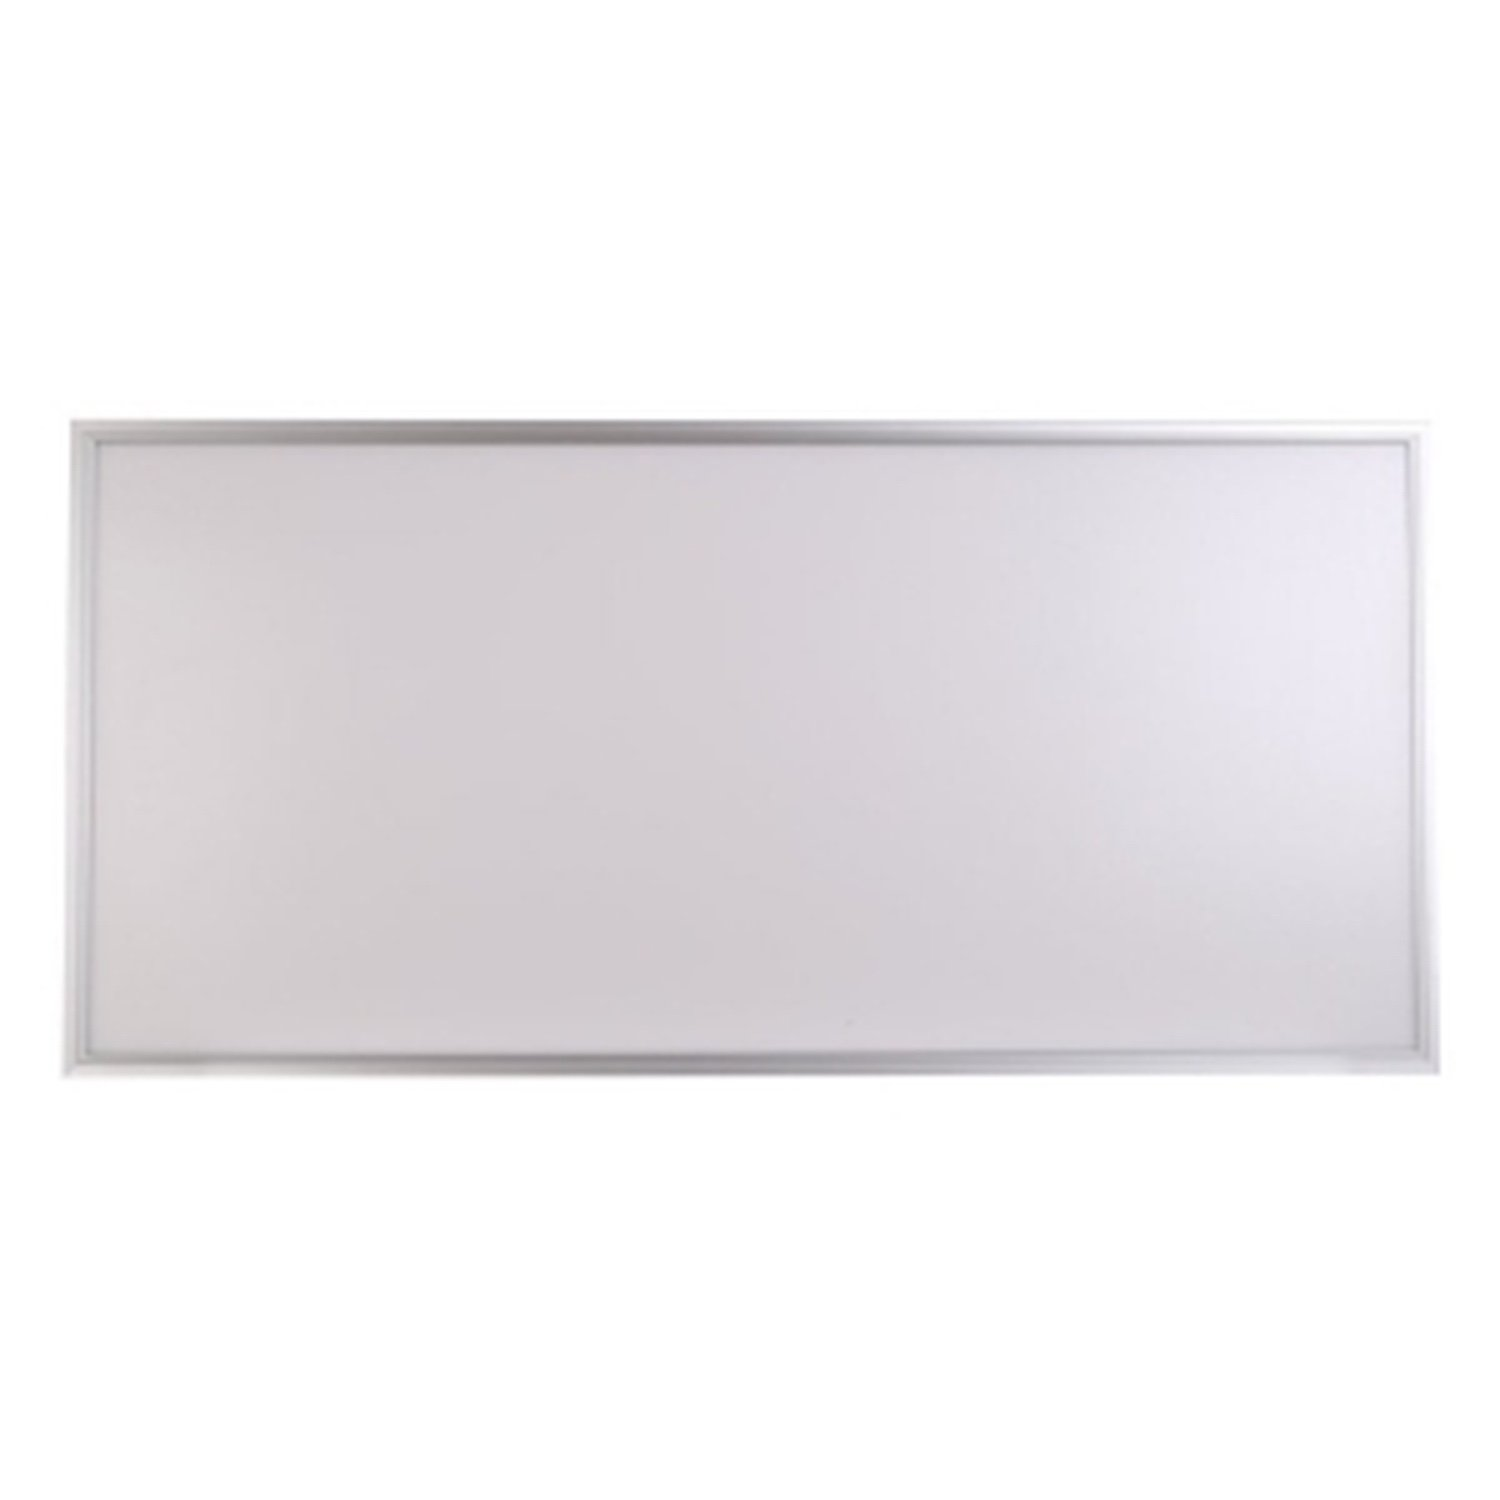 60X120cm 88 W-LED Panel Light Recessed Ceiling Flat Panel Downlight Lamp COLOR WARM WHITE 3000K